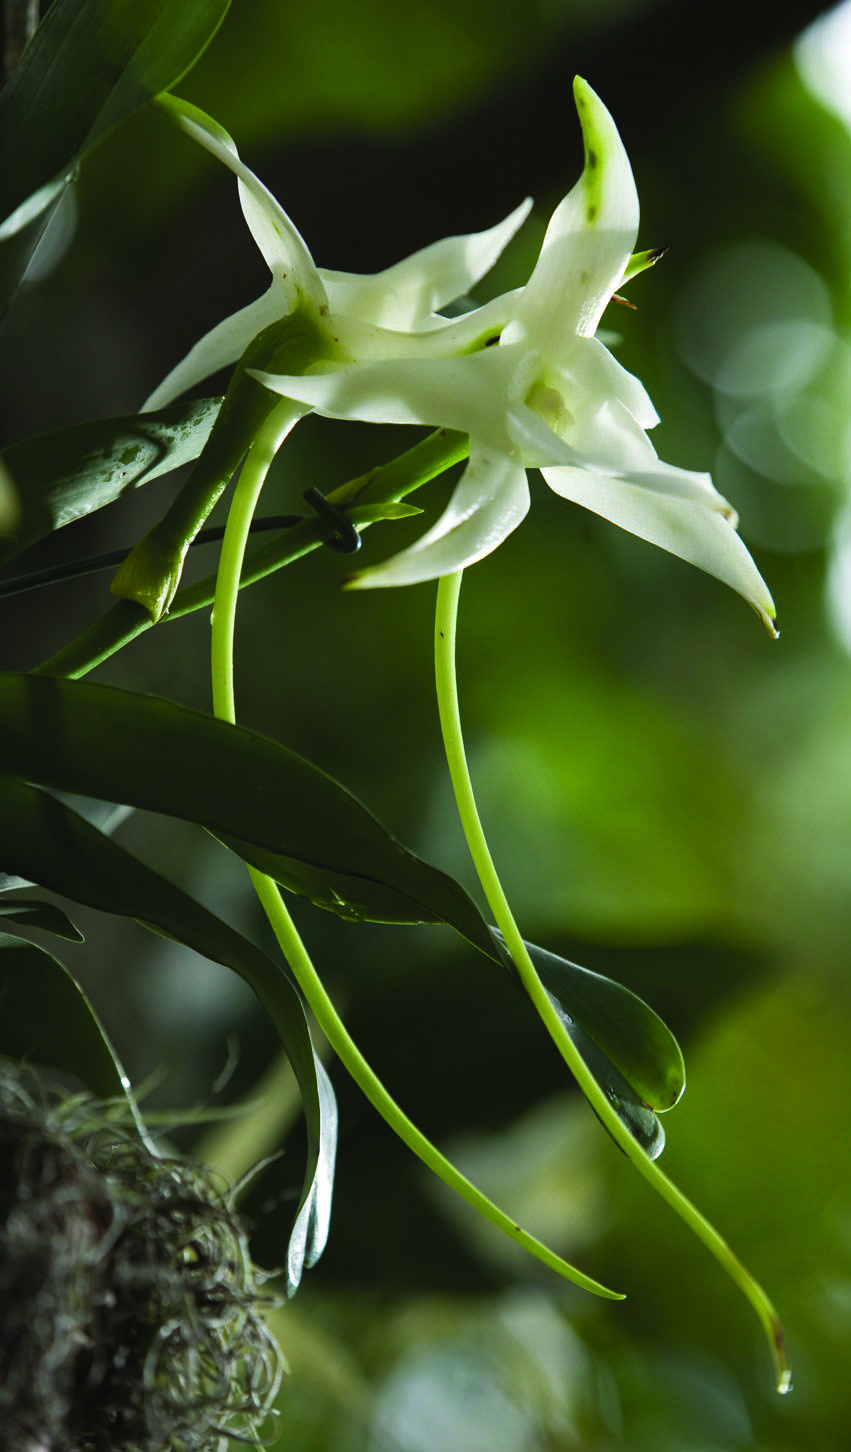 I love the endangered Darwinus orchid Angraecum sesquipedale